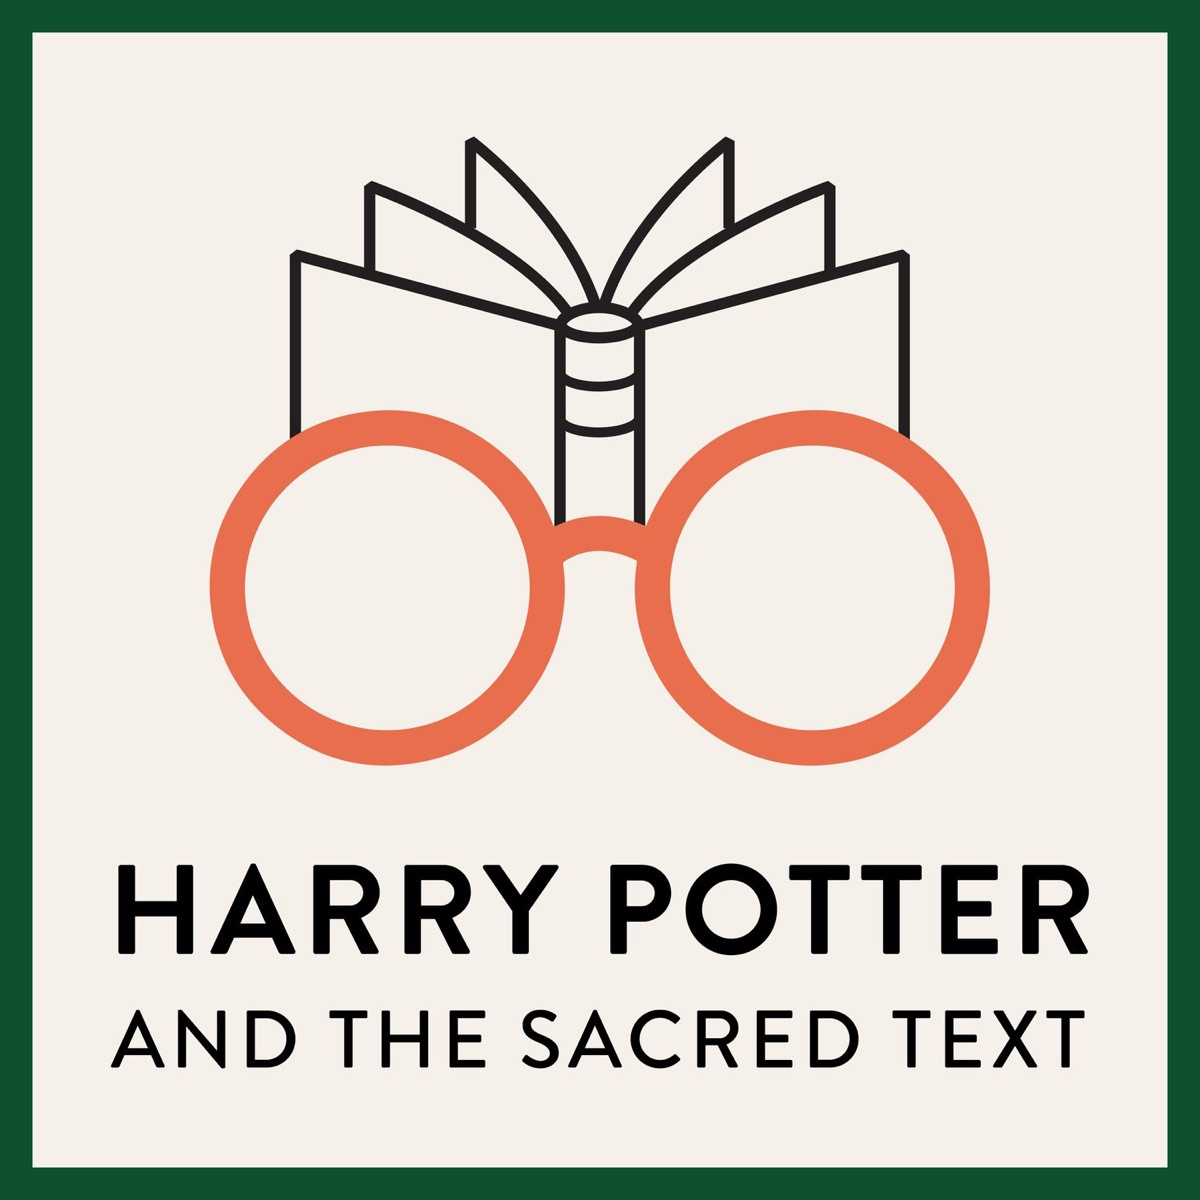 Knowledge: The Deathly Hallows (Book 7, Chapter 22)